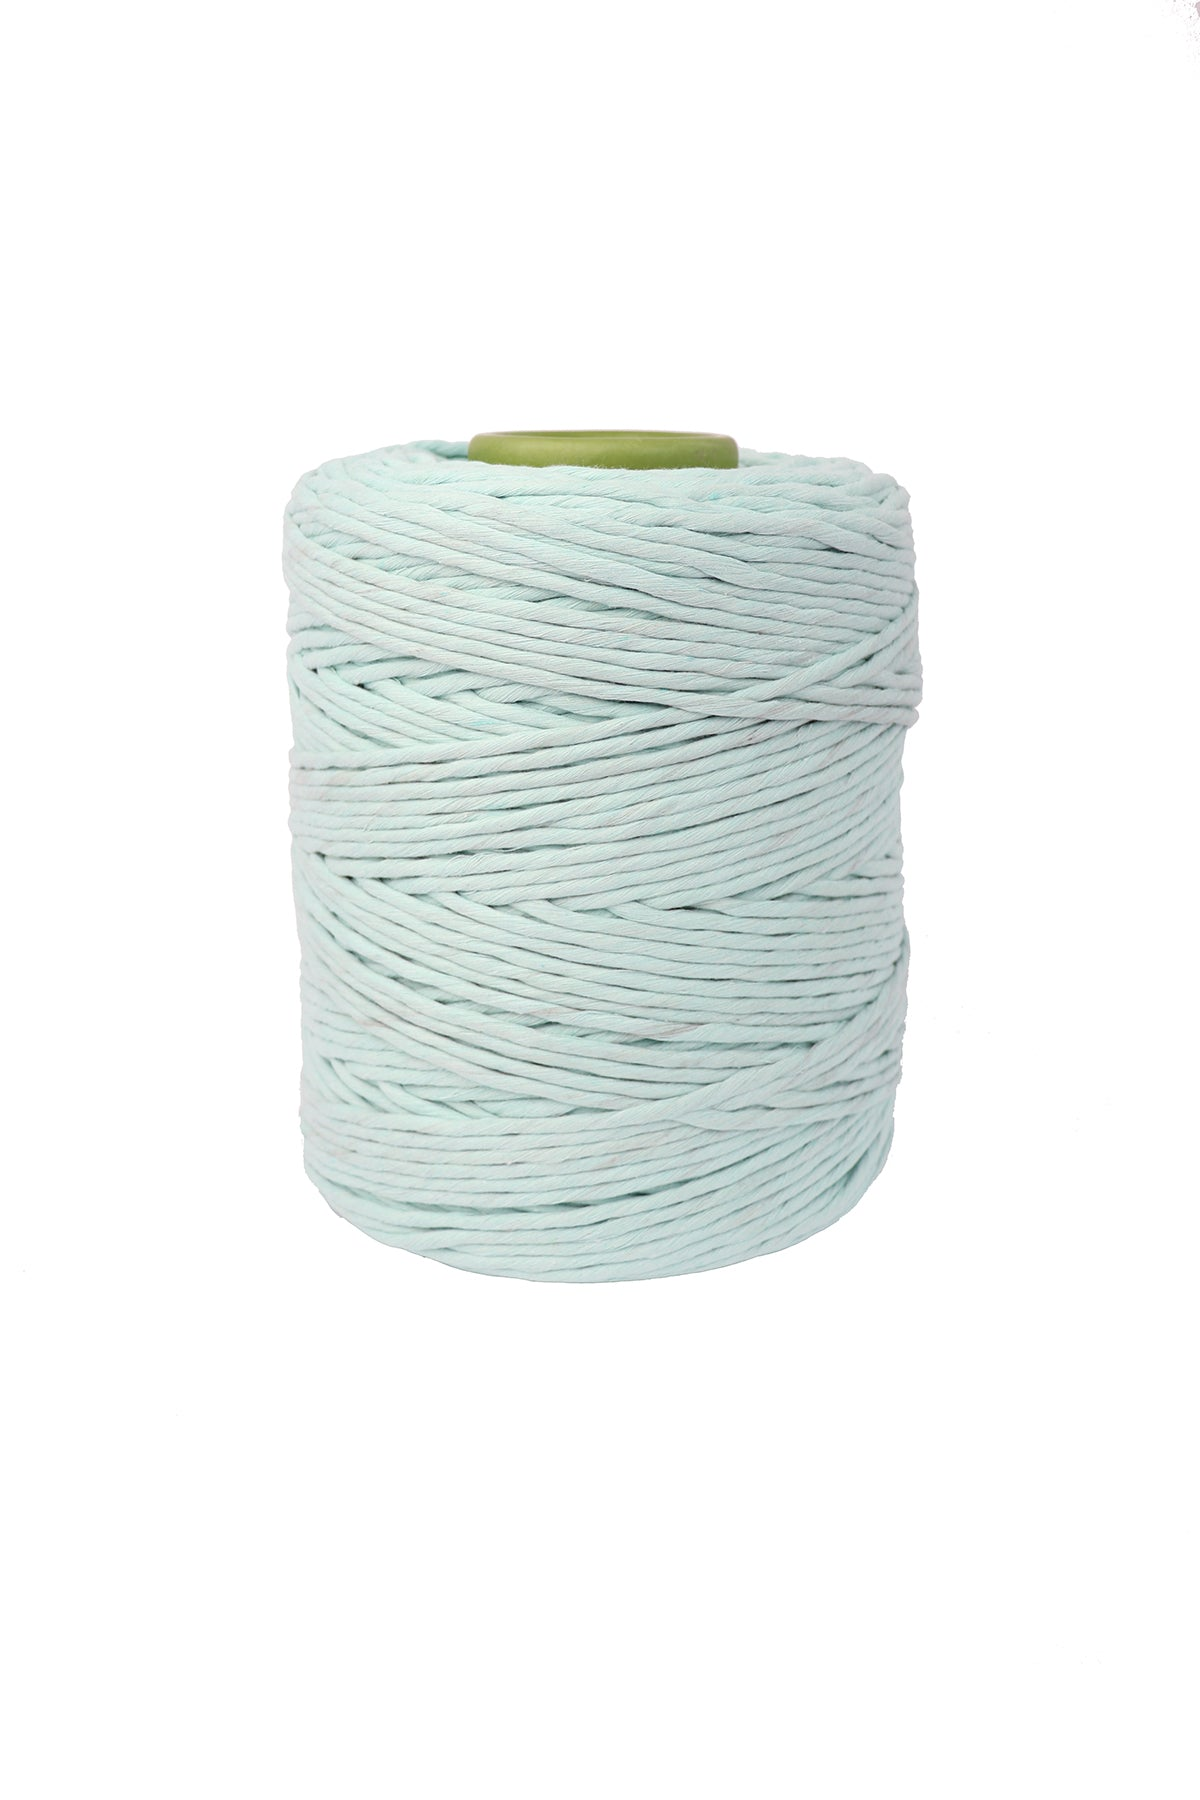 4MM COTTON STRING 1200' SPOOLS